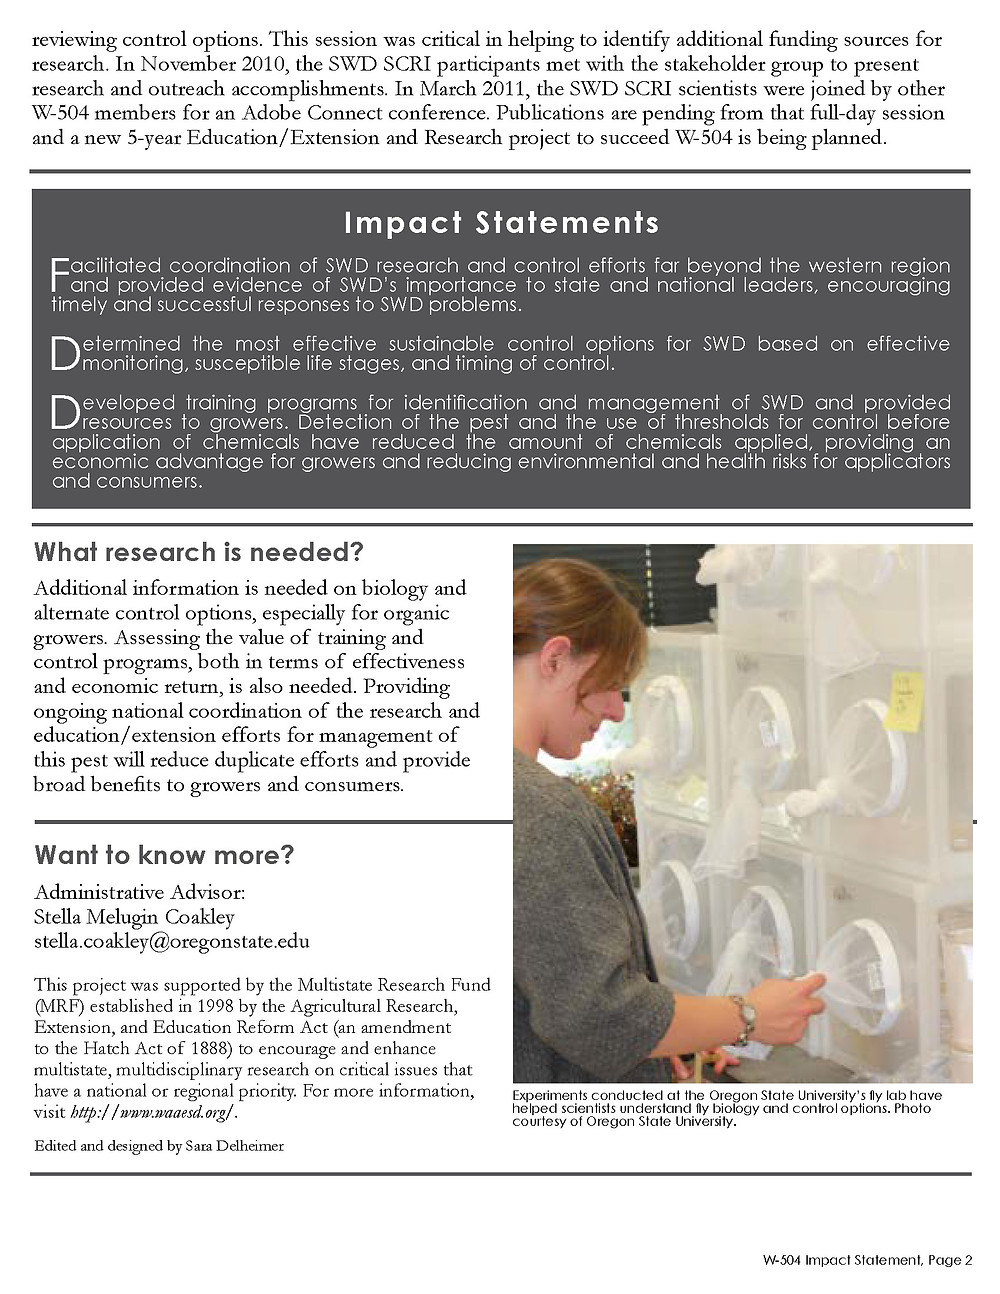 Click to view, download, or print a PDF of the Impact Statement